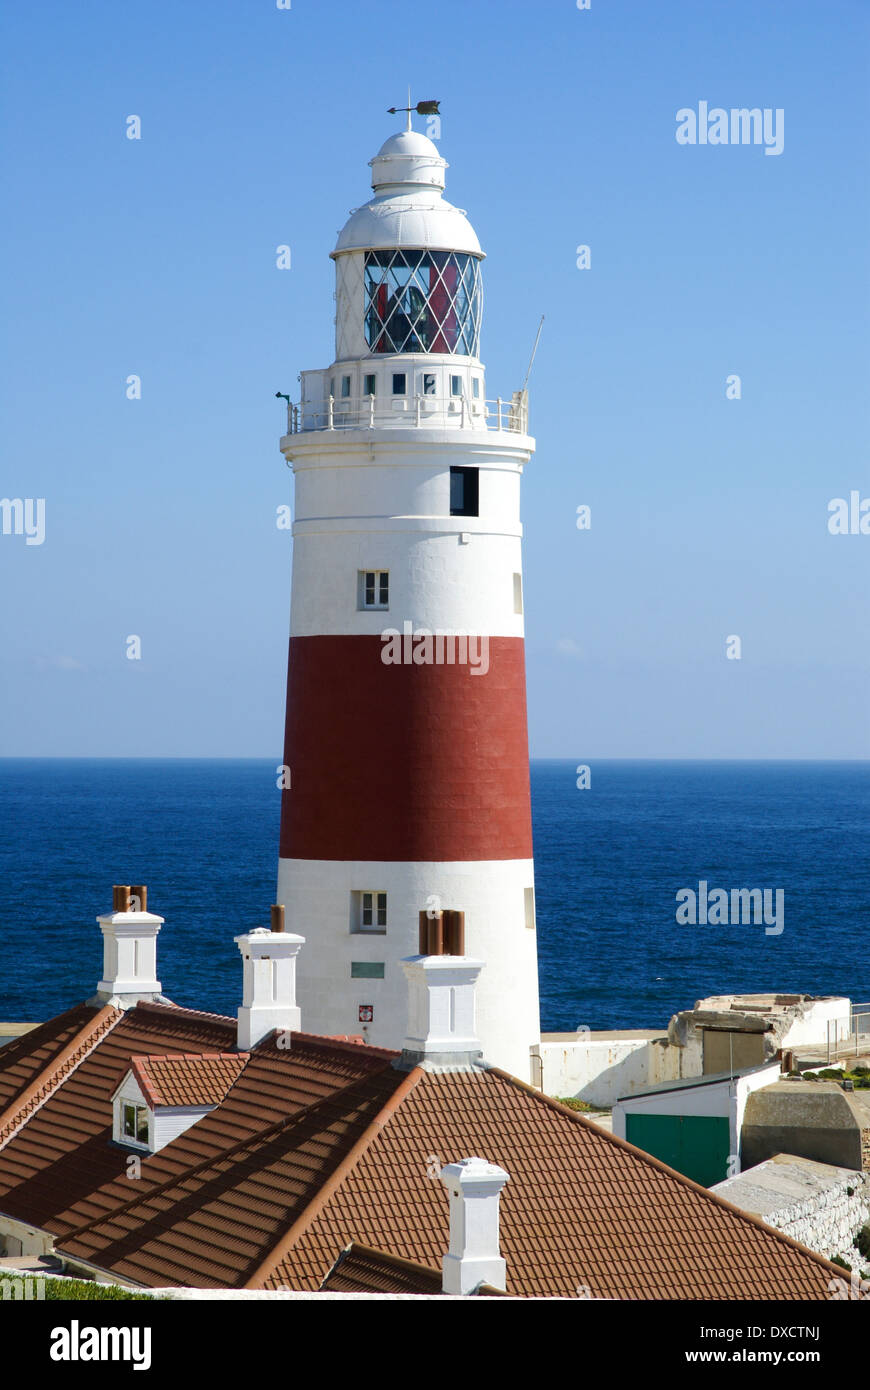 Lighthouse at Europa Point, Gibraltar - Stock Image